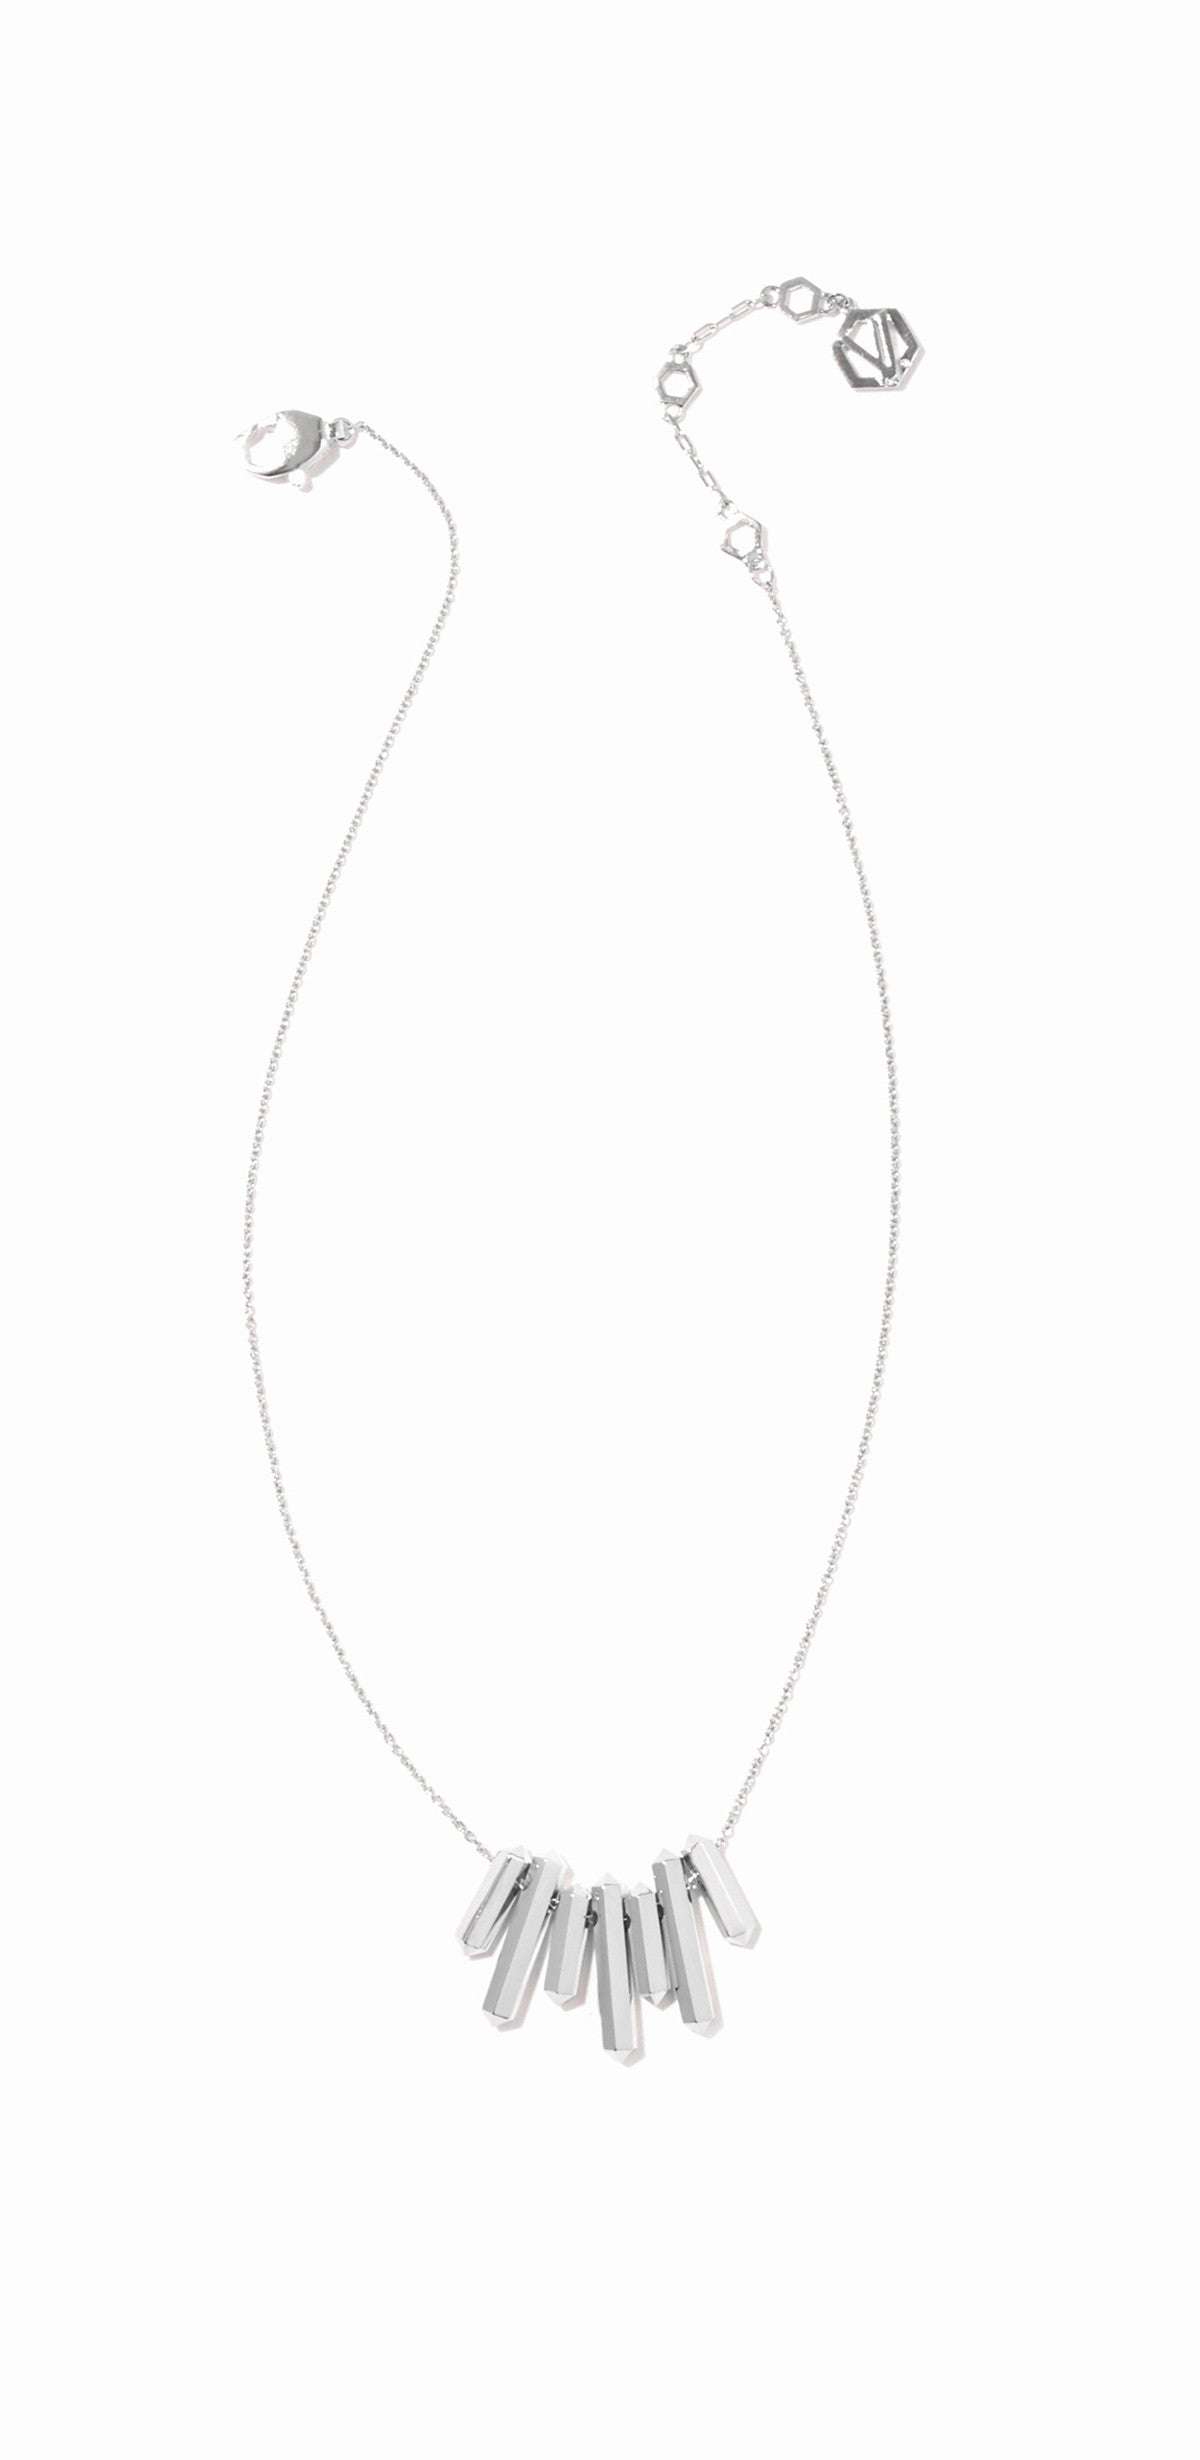 Aurum Small Bib Necklace - Rhodium